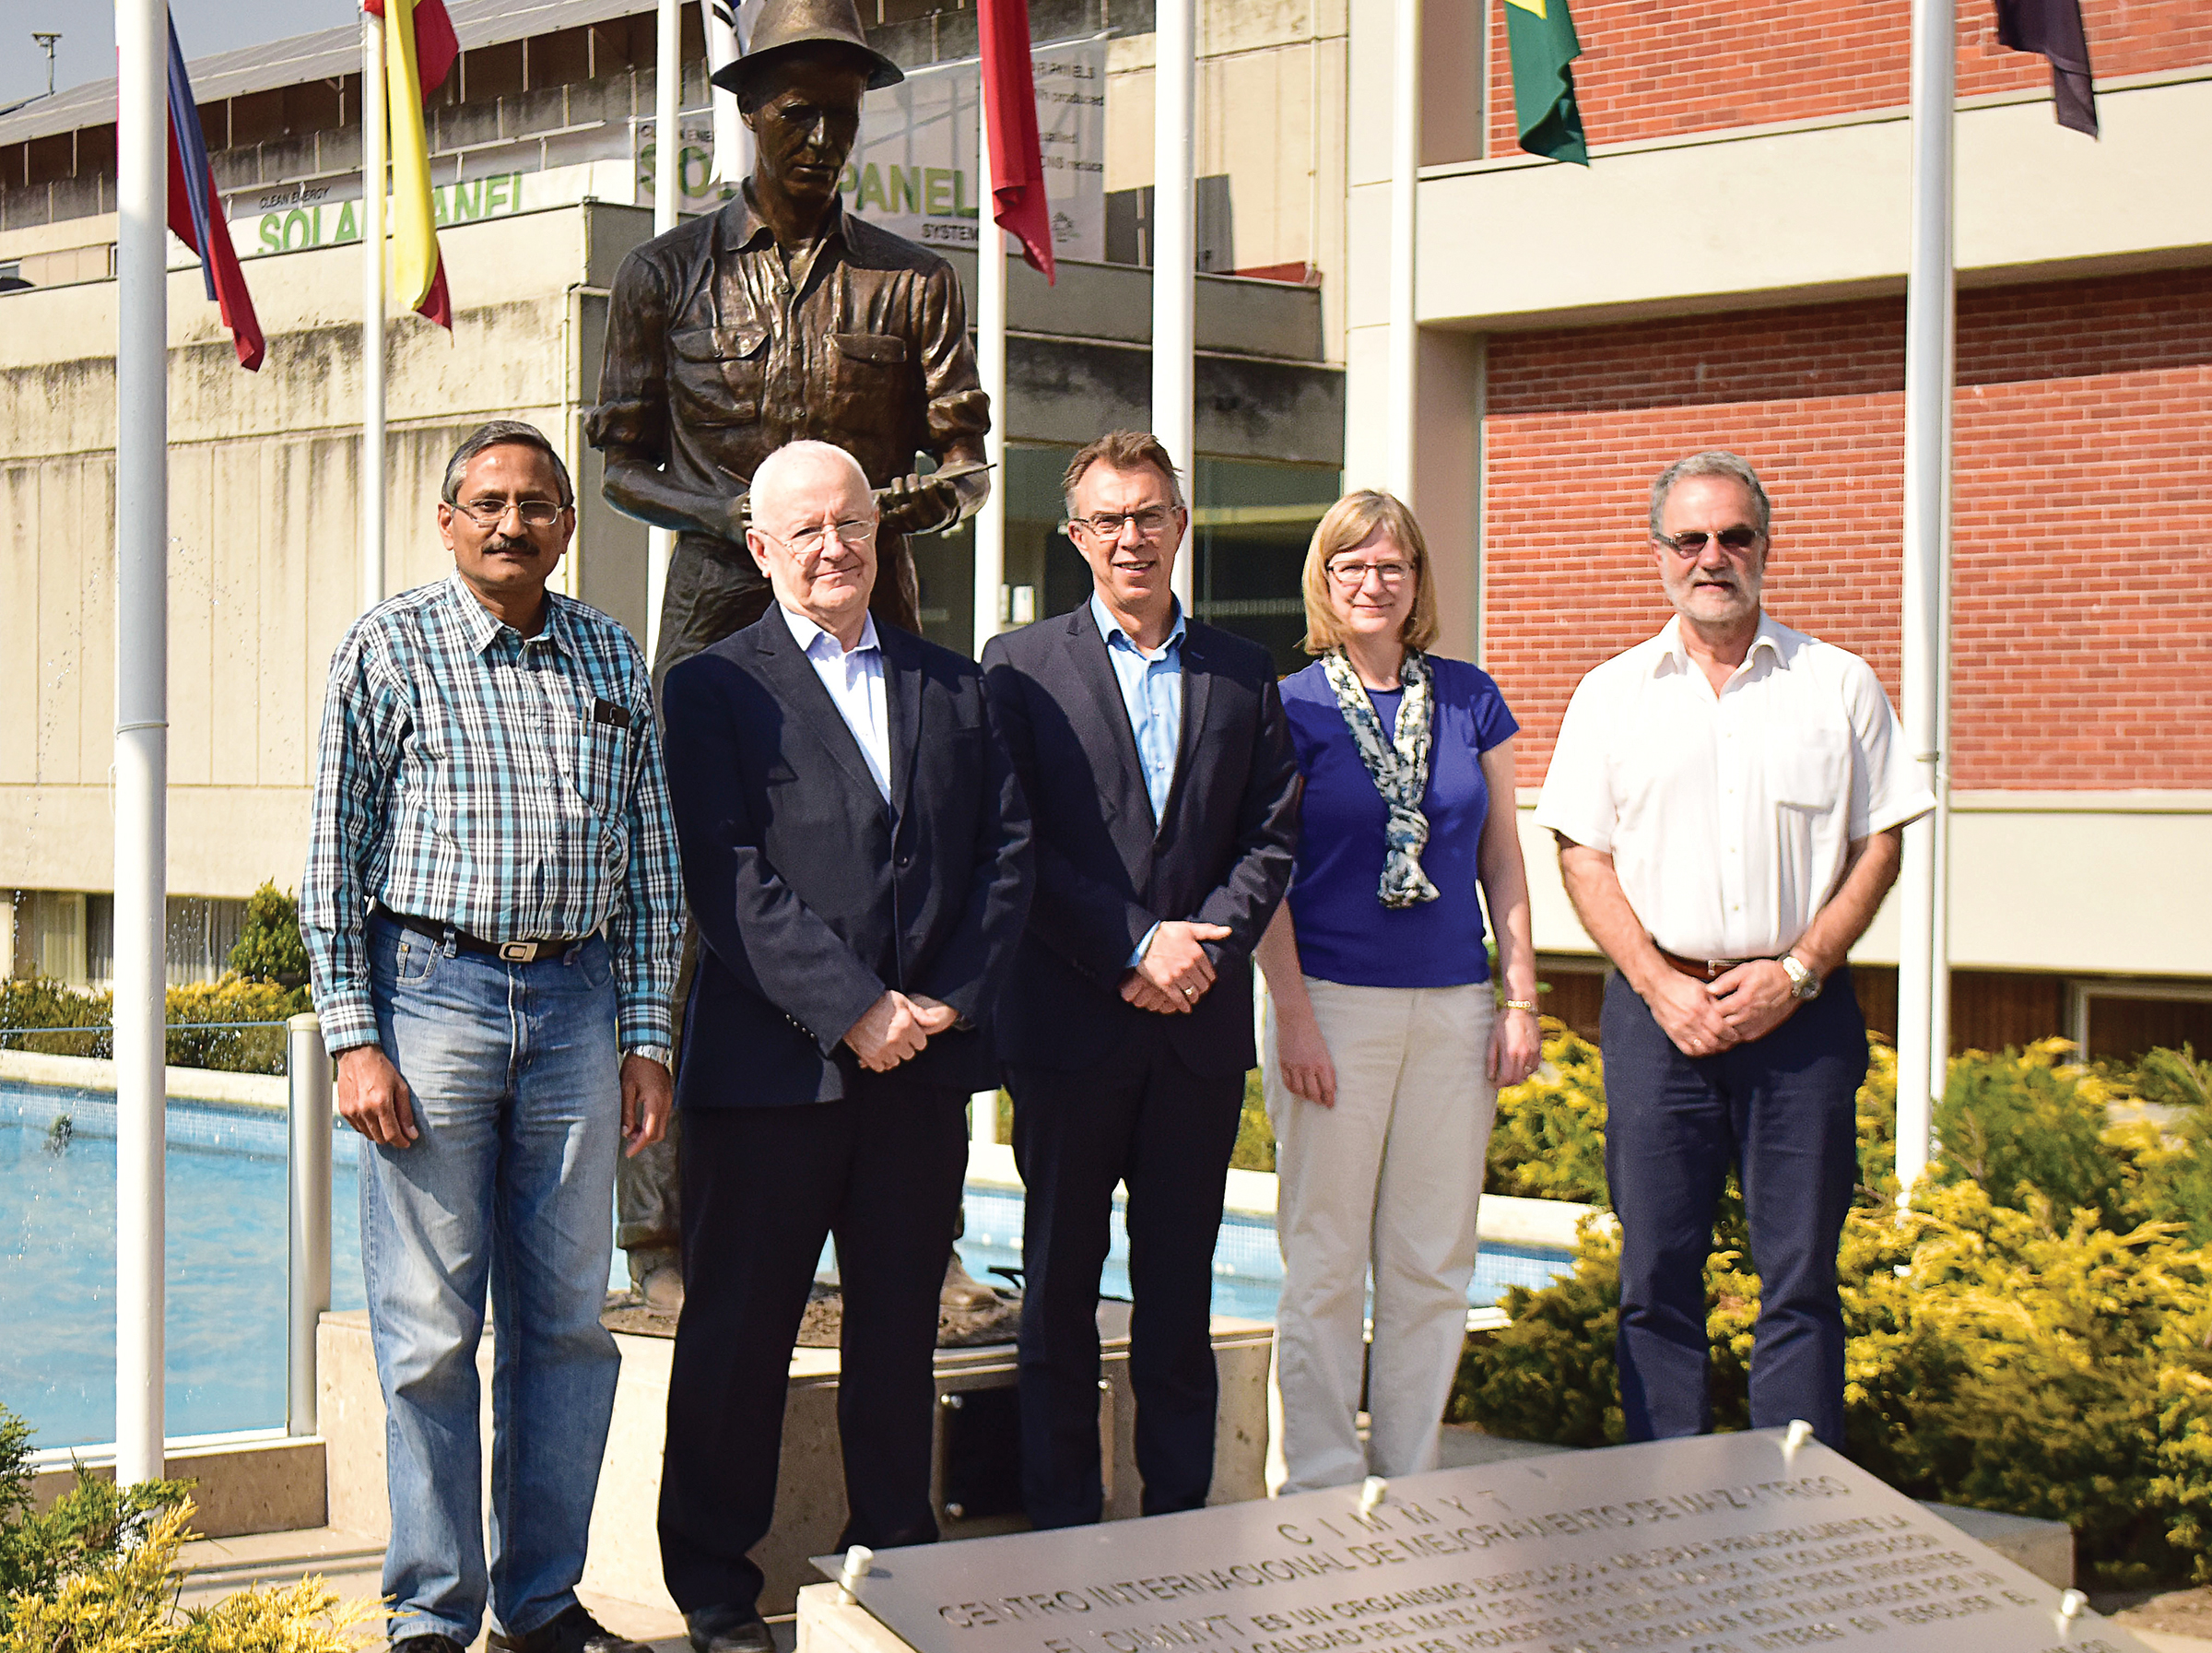 From L-R: Ravi Singh, CIMMYT Distinguished Scientist and Wheat Breeder, Roger Freedman, 2Blades Chairman, Martin Kropff, CIMMYT Director General, Lynne Reuber, 2Blades Program Director and Hans Braun, Director of CIMMYT's Global Wheat Program. Photo: Alfonso Cortés Arredondo/CIMMYT